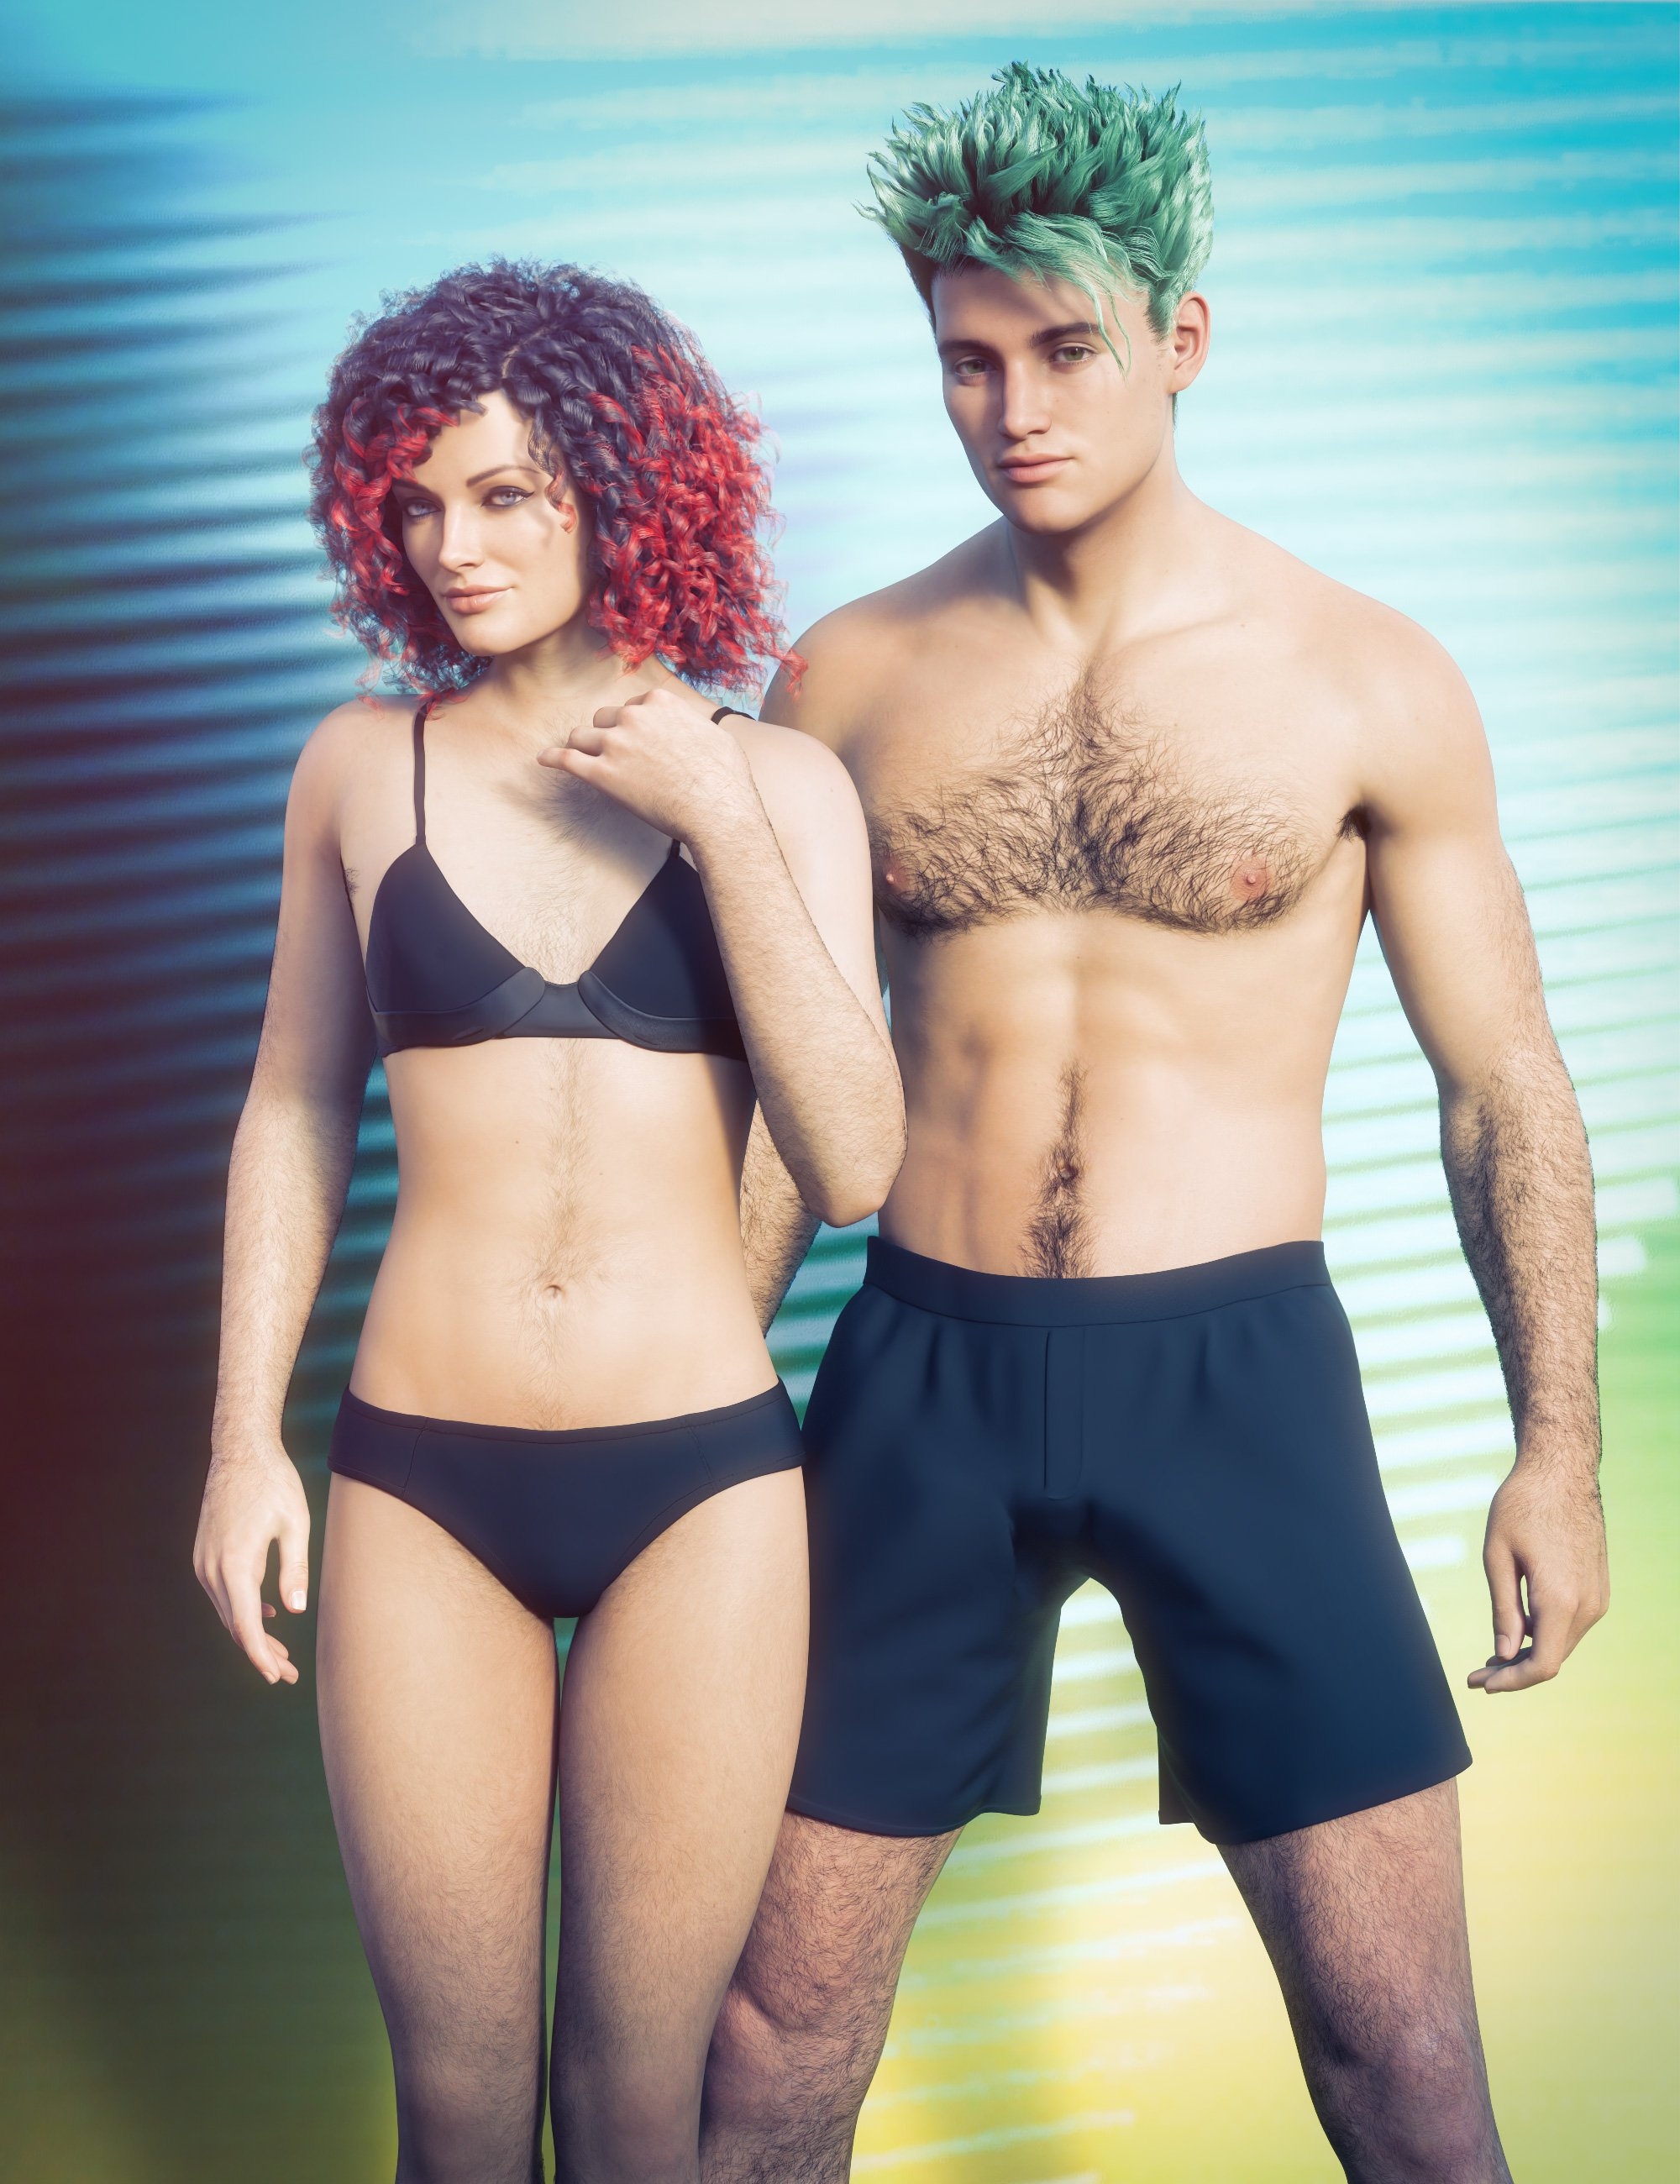 Jepe's Body Hair Project 8.1 by: Jepe, 3D Models by Daz 3D